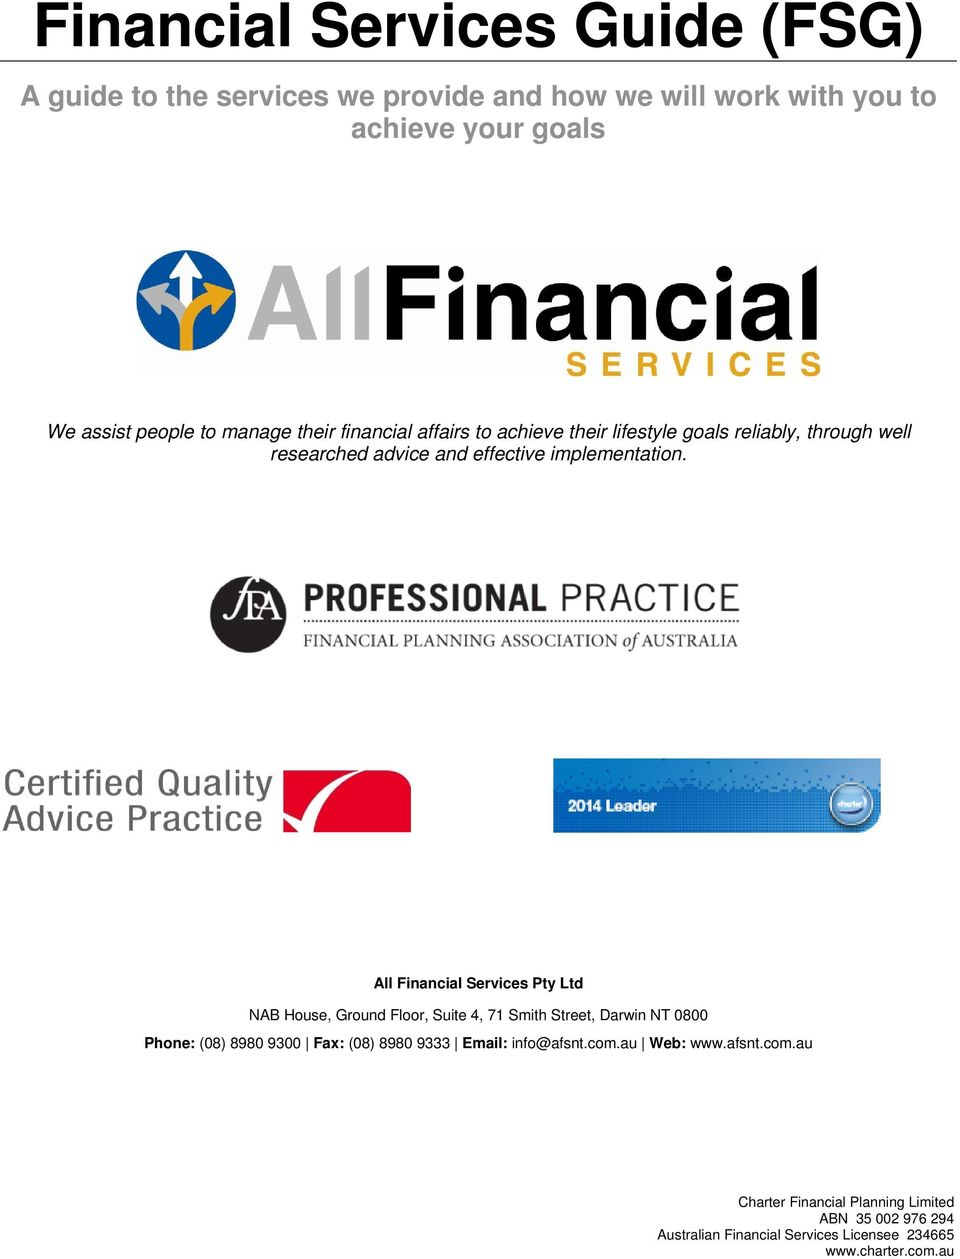 All Financial Services Pty Ltd NAB House, Ground Floor, Suite 4, 71 Smith Street, Darwin NT 0800 Phone: (08) 8980 9300 Fax: (08) 8980 9333